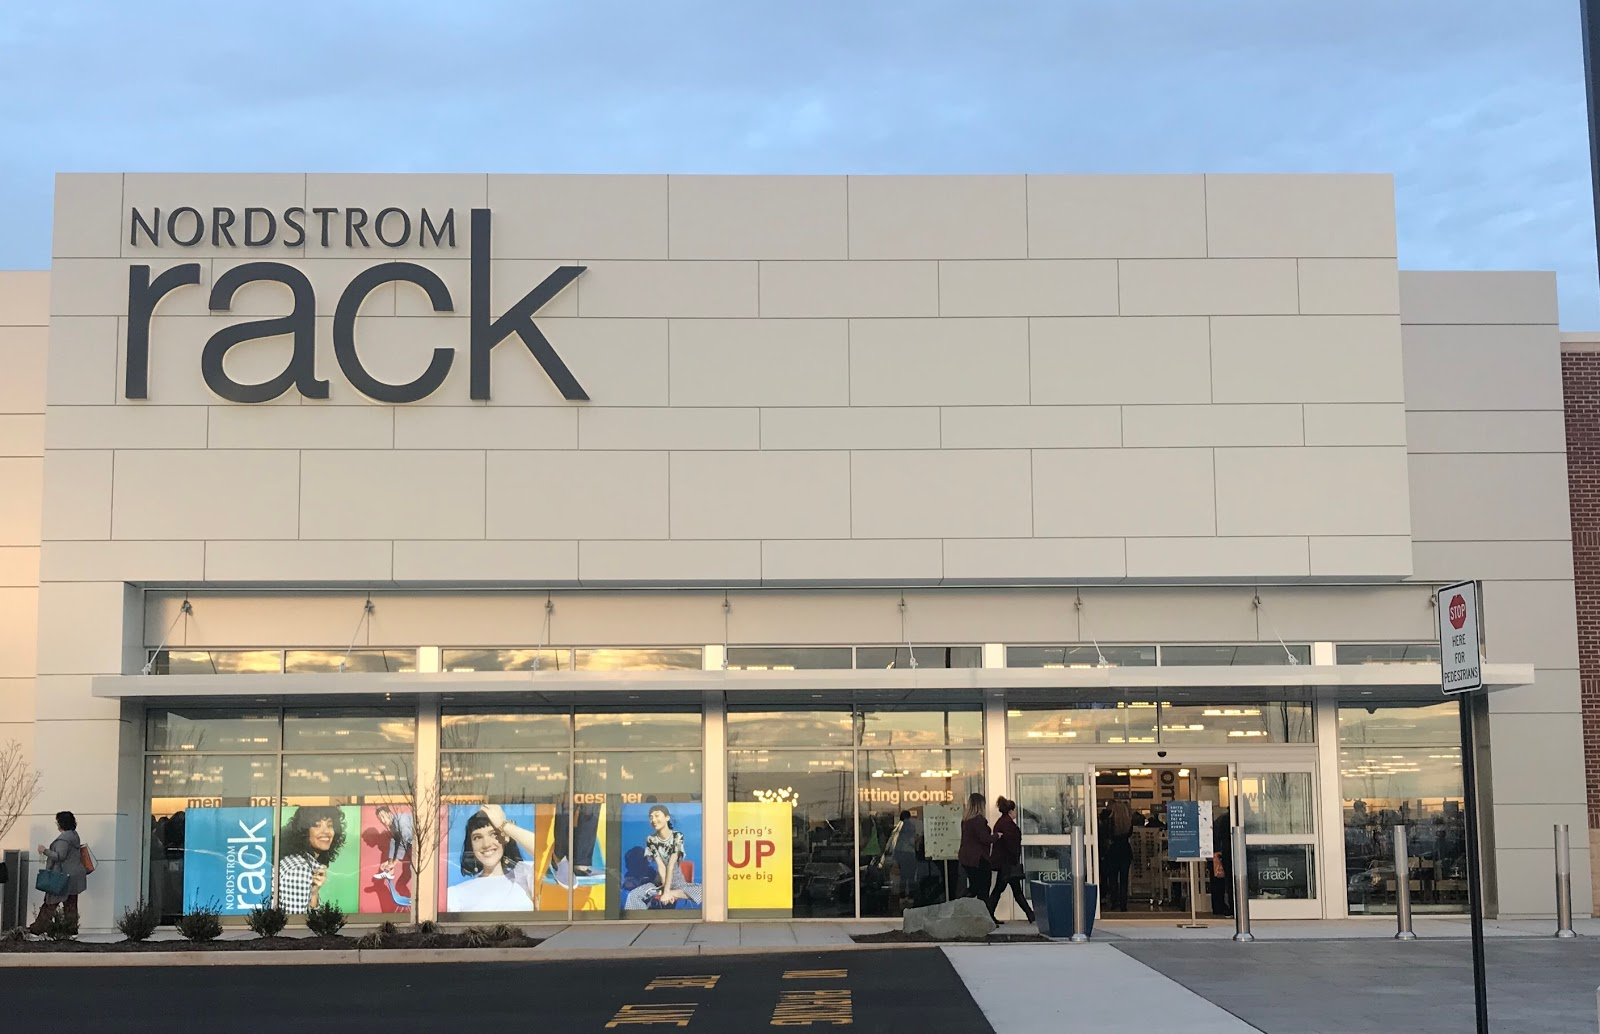 c626788b Nordstrom Rack will open its fabulous 36,000 square foot location to the  public on March 8th at Chimney Rock Crossing in Bridgewater, New Jersey.